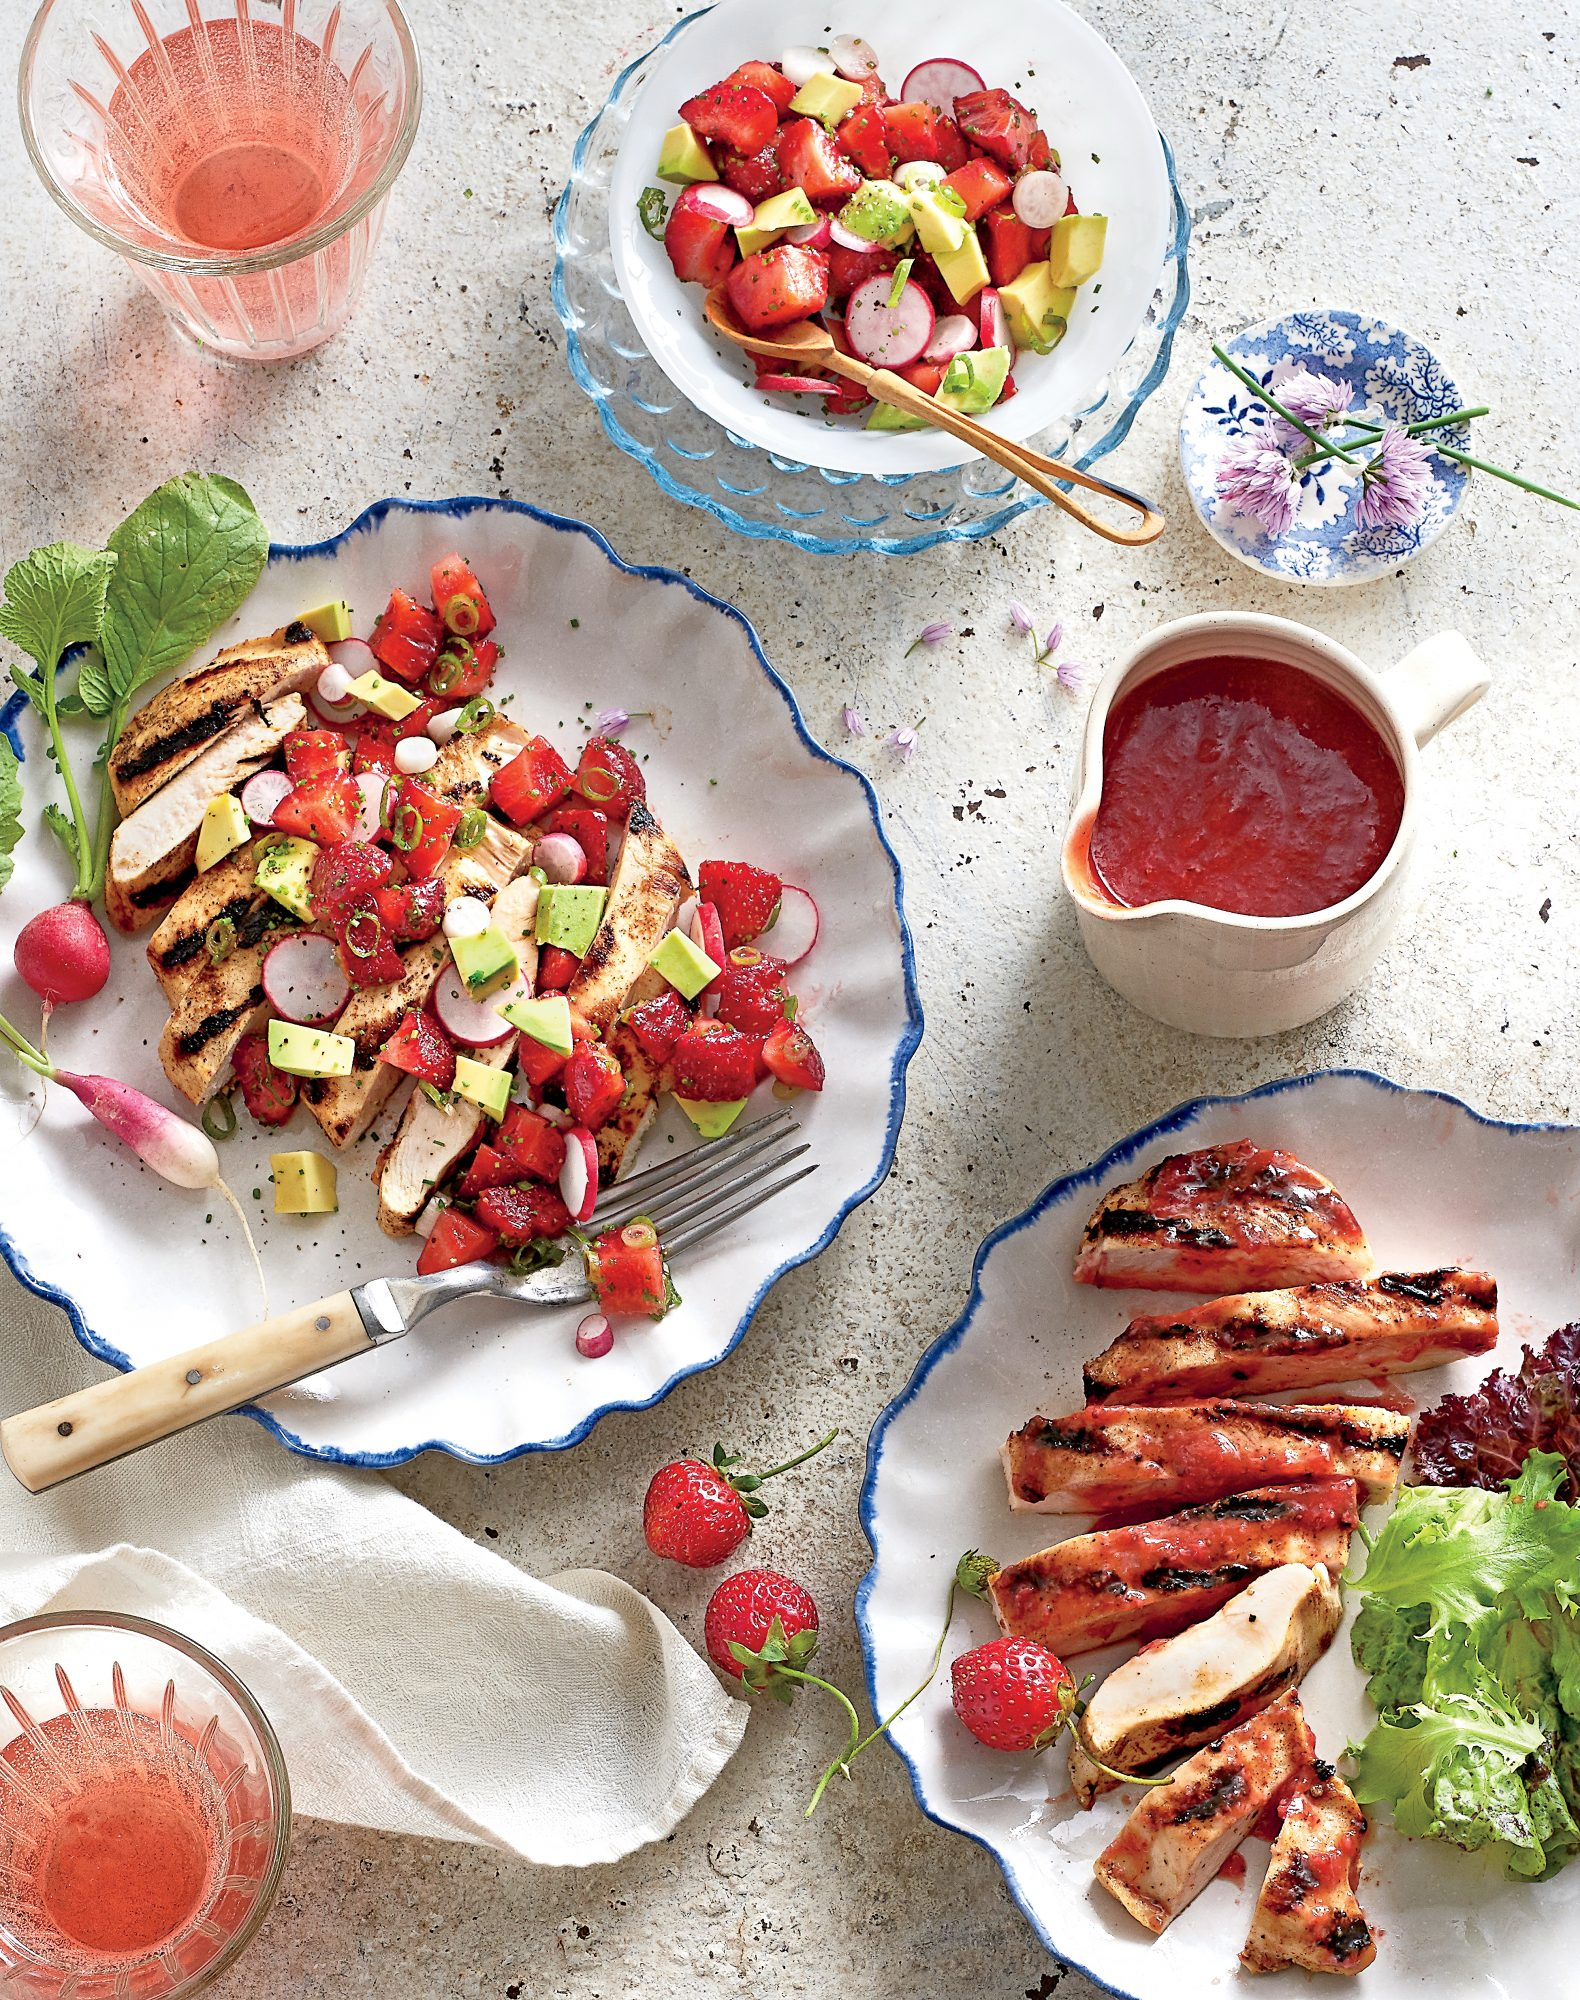 Tangy Strawberry Barbecue Sauce